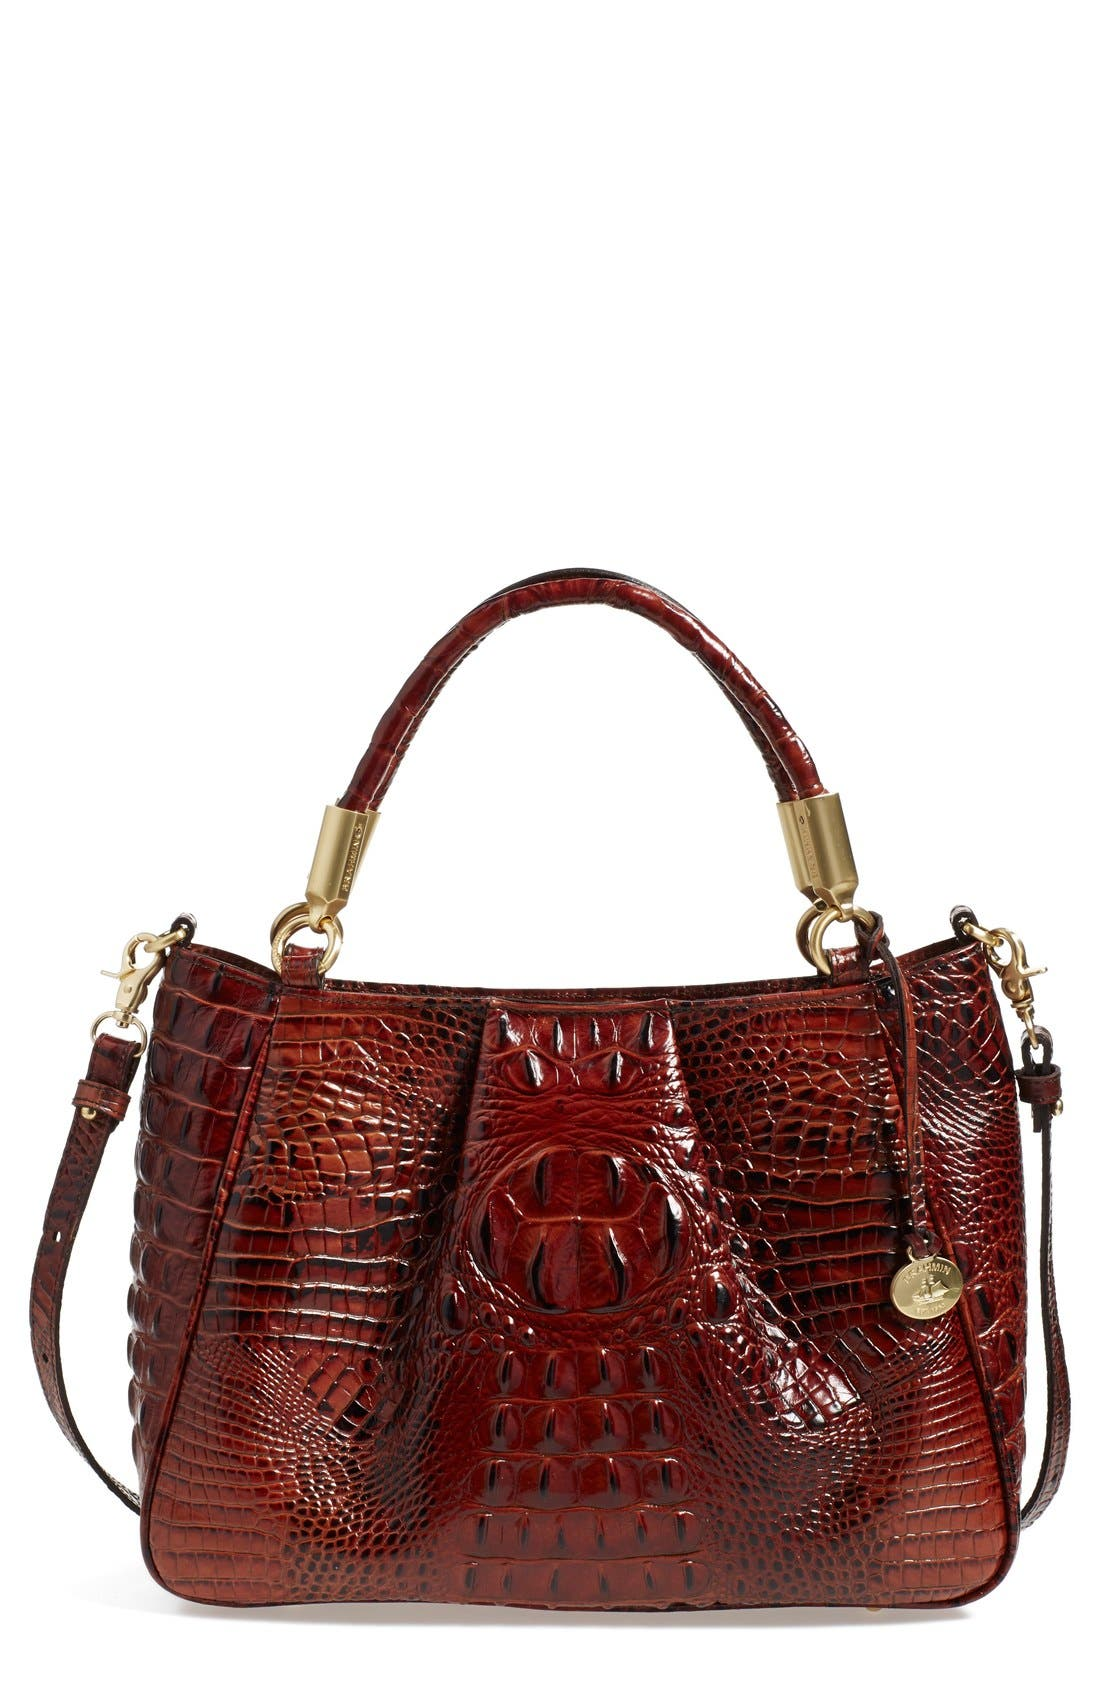 Brahmin Ruby Croc Embossed Leather Satchel